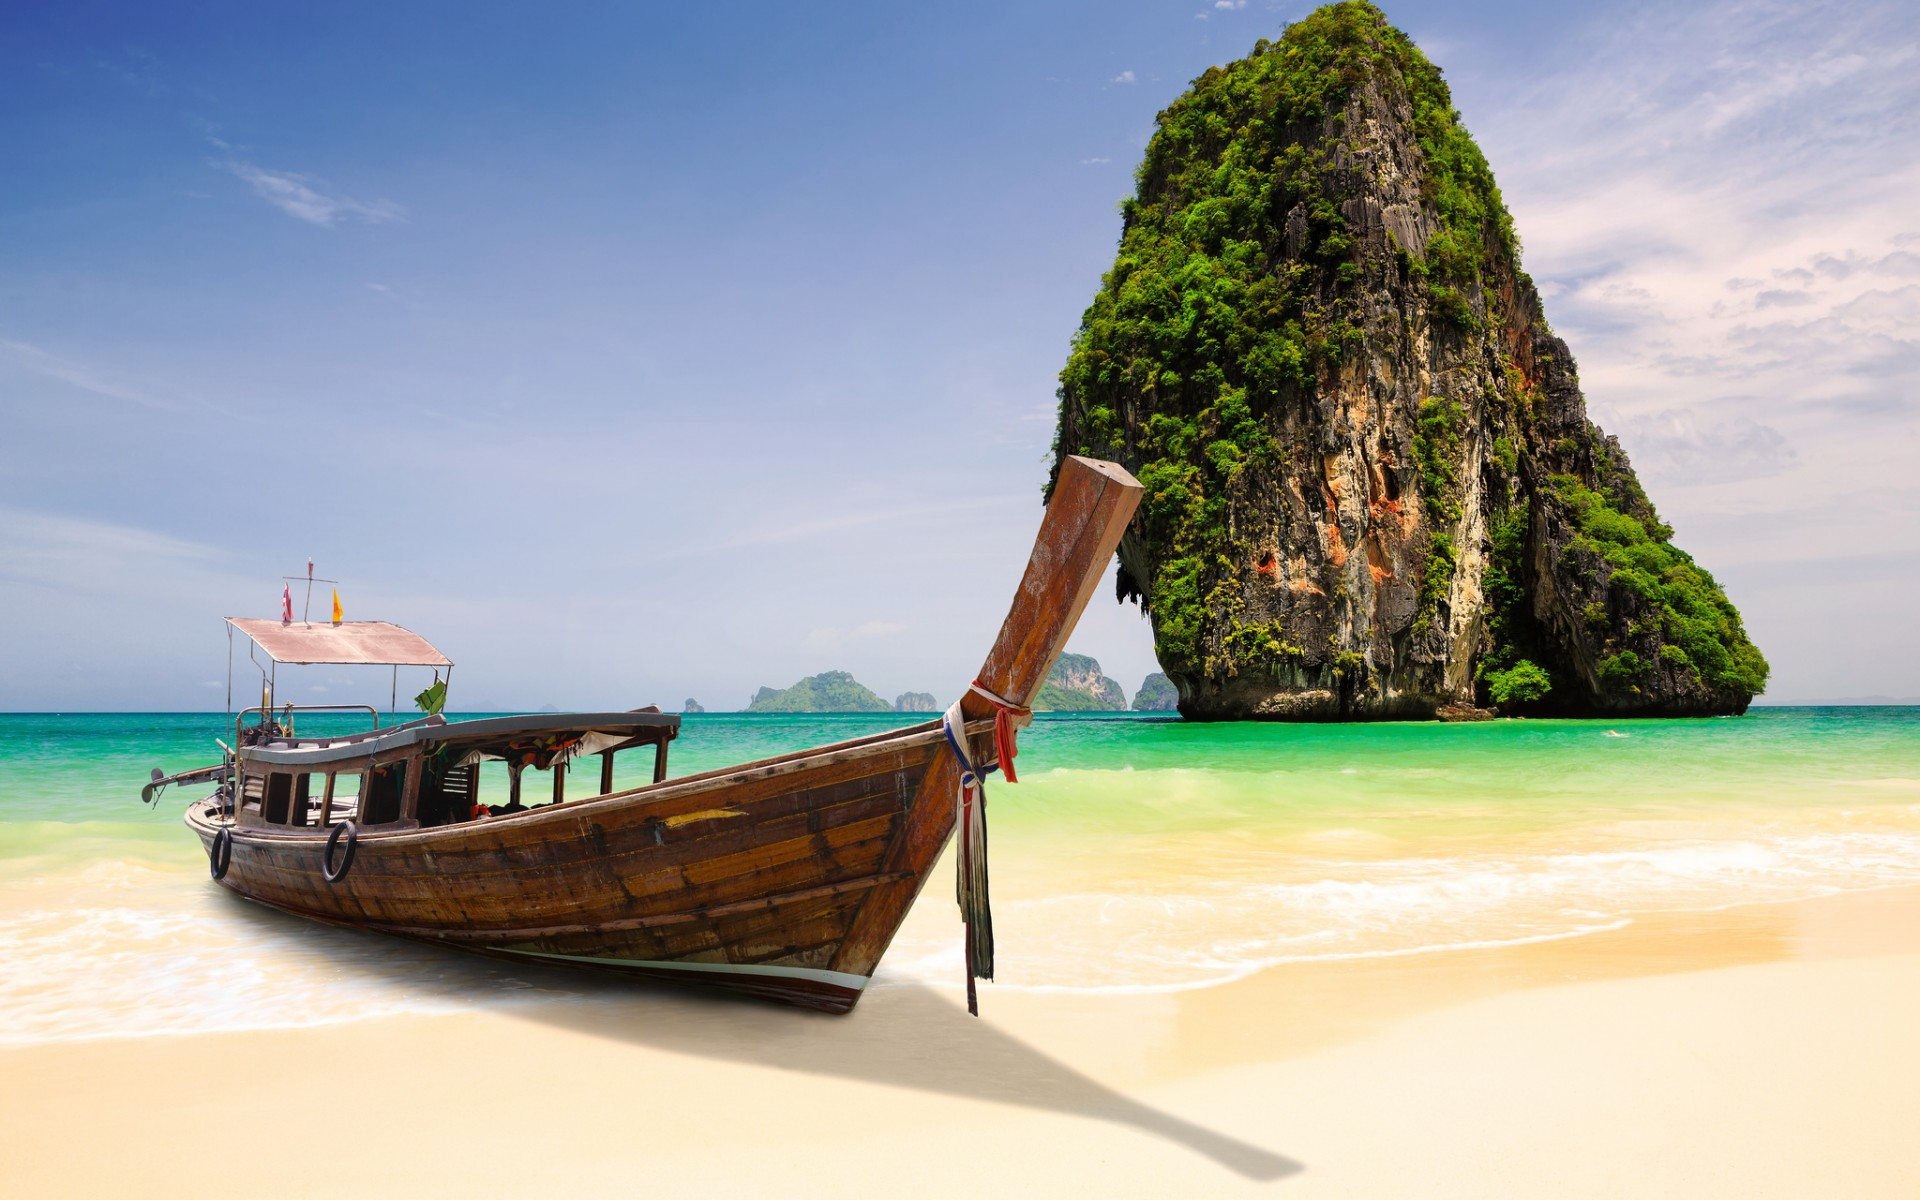 Krabi Thailand  city photos : Krabi || Thailand – Weirdly Beautiful Places # 1 | Khichdi Online ...